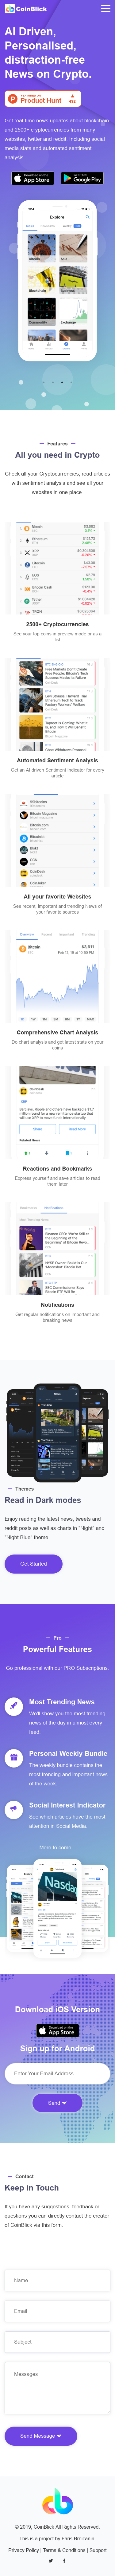 Example of Design for Finance, Investing, Currencies & Foreign Exchange, Mobile Landing Page by coinblick.com | Mobile Landing Page Design